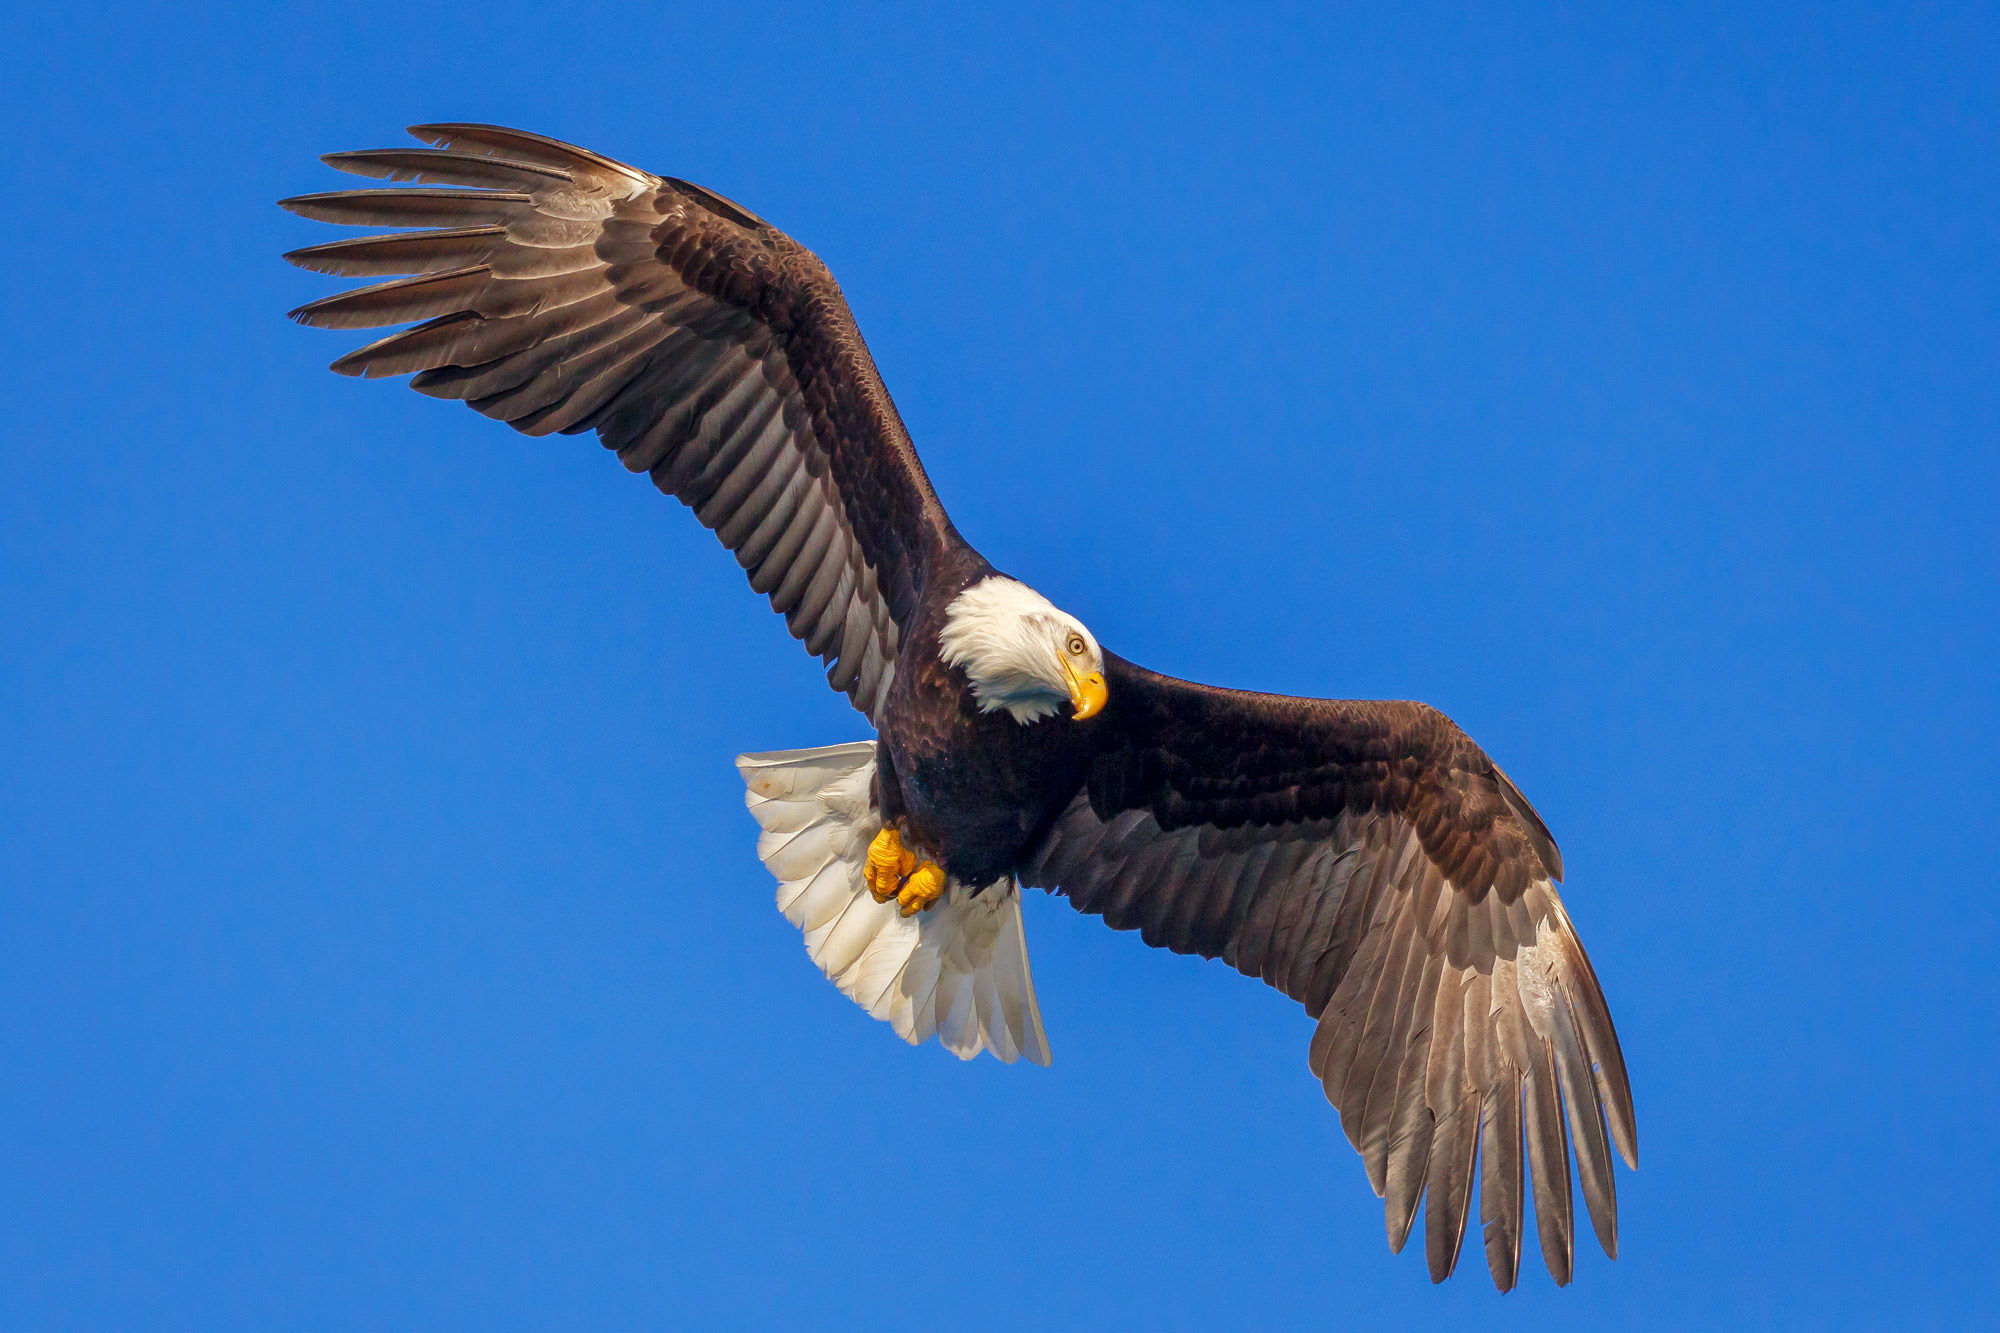 Eagle Fine Art Photography A Limited Edition photograph of a Bald Eagle in flight and getting ready to dive for a fish at Kachemak...